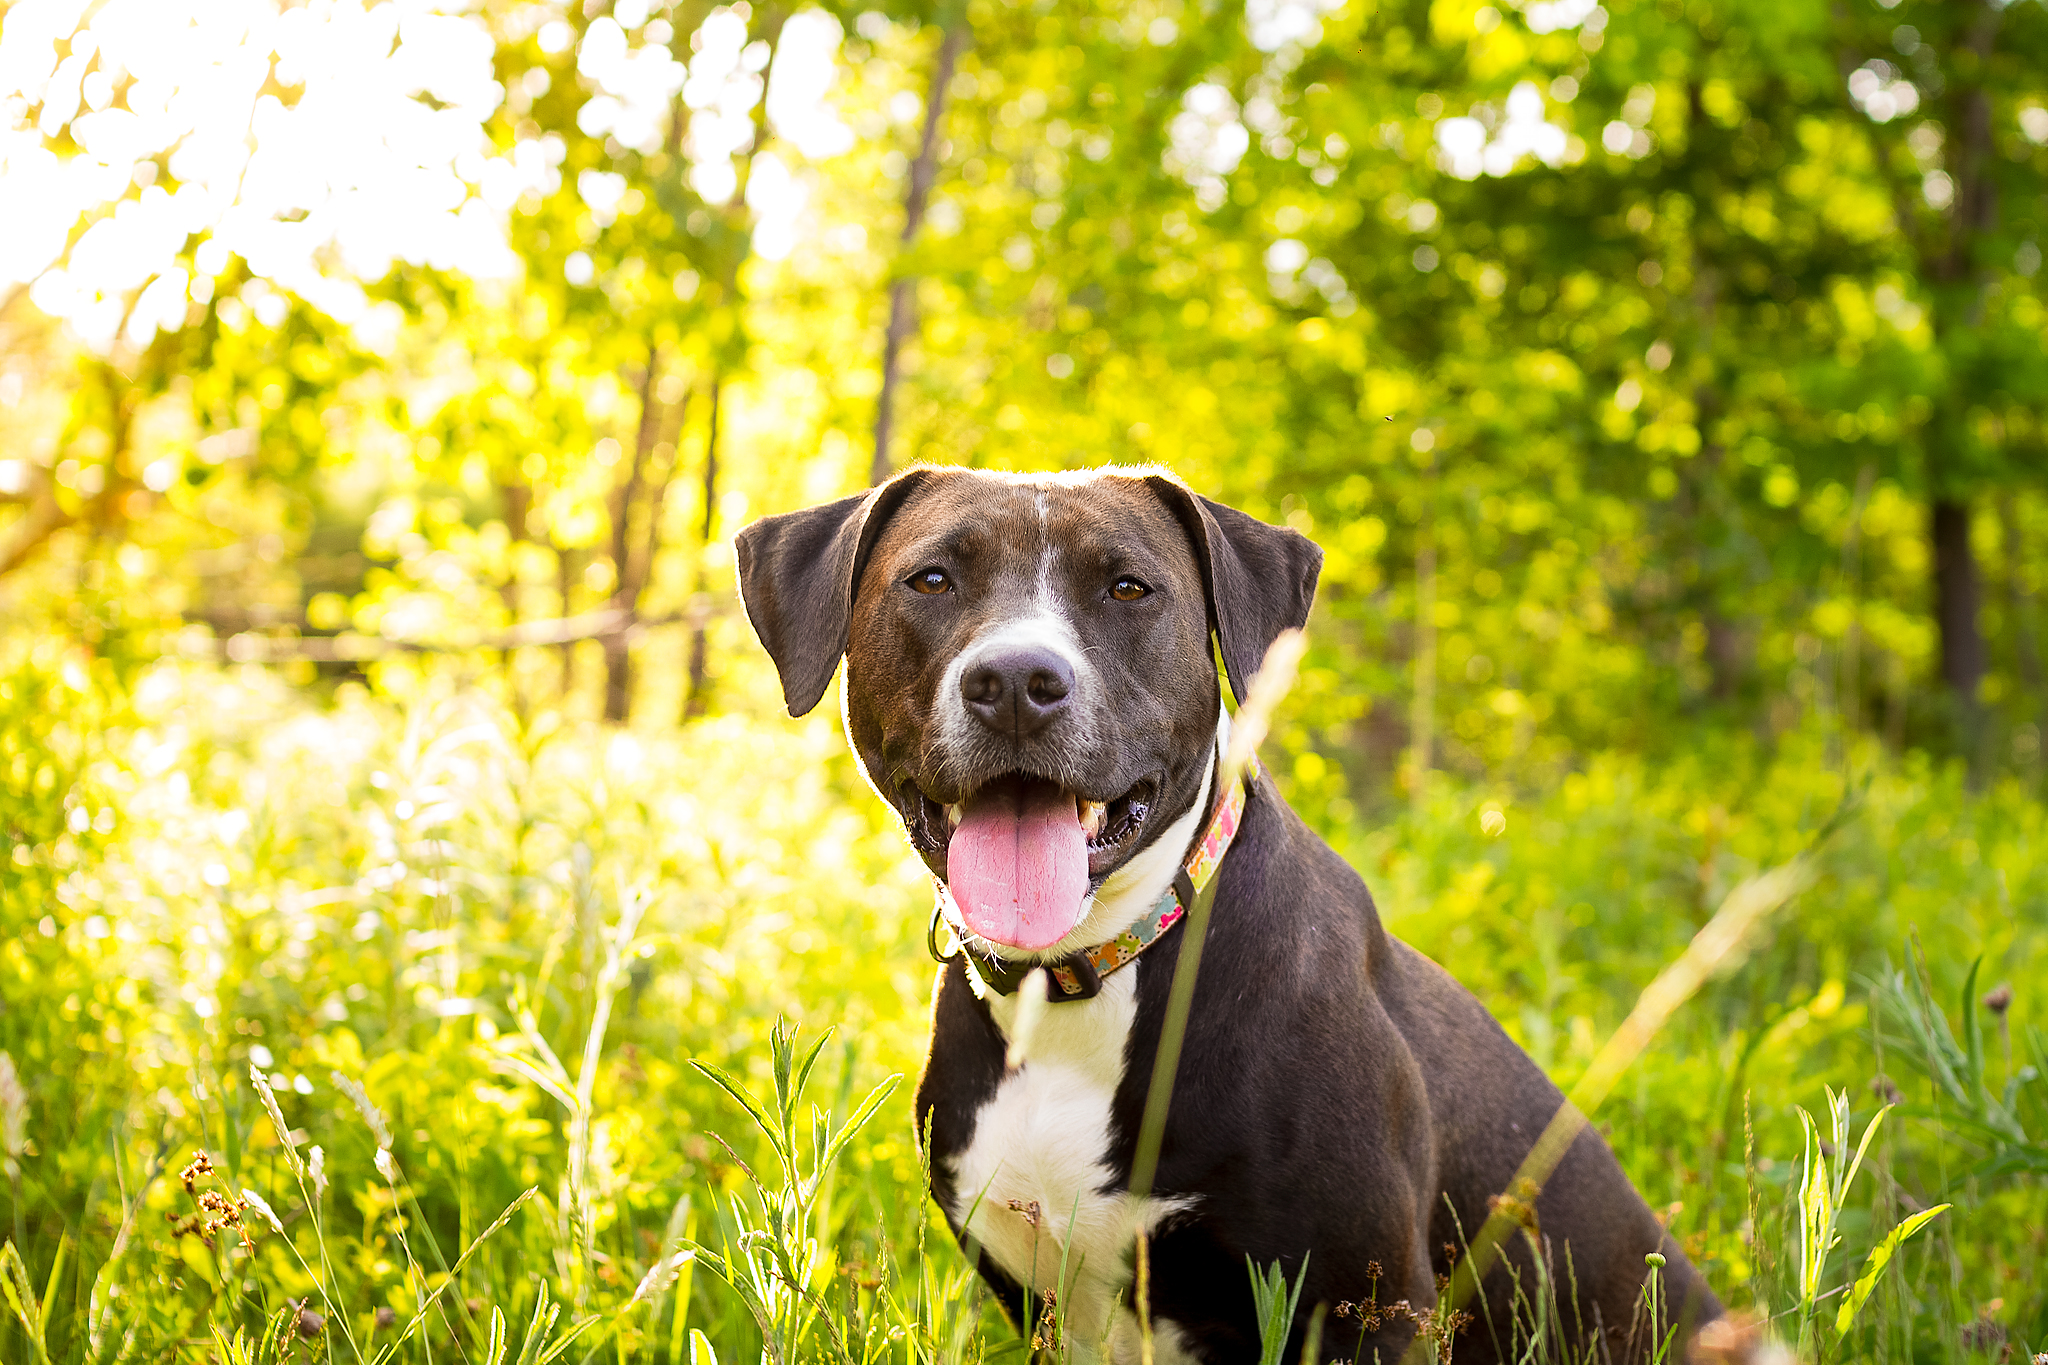 Ruby_reactive_dog_pitbull_amstaff.jpg